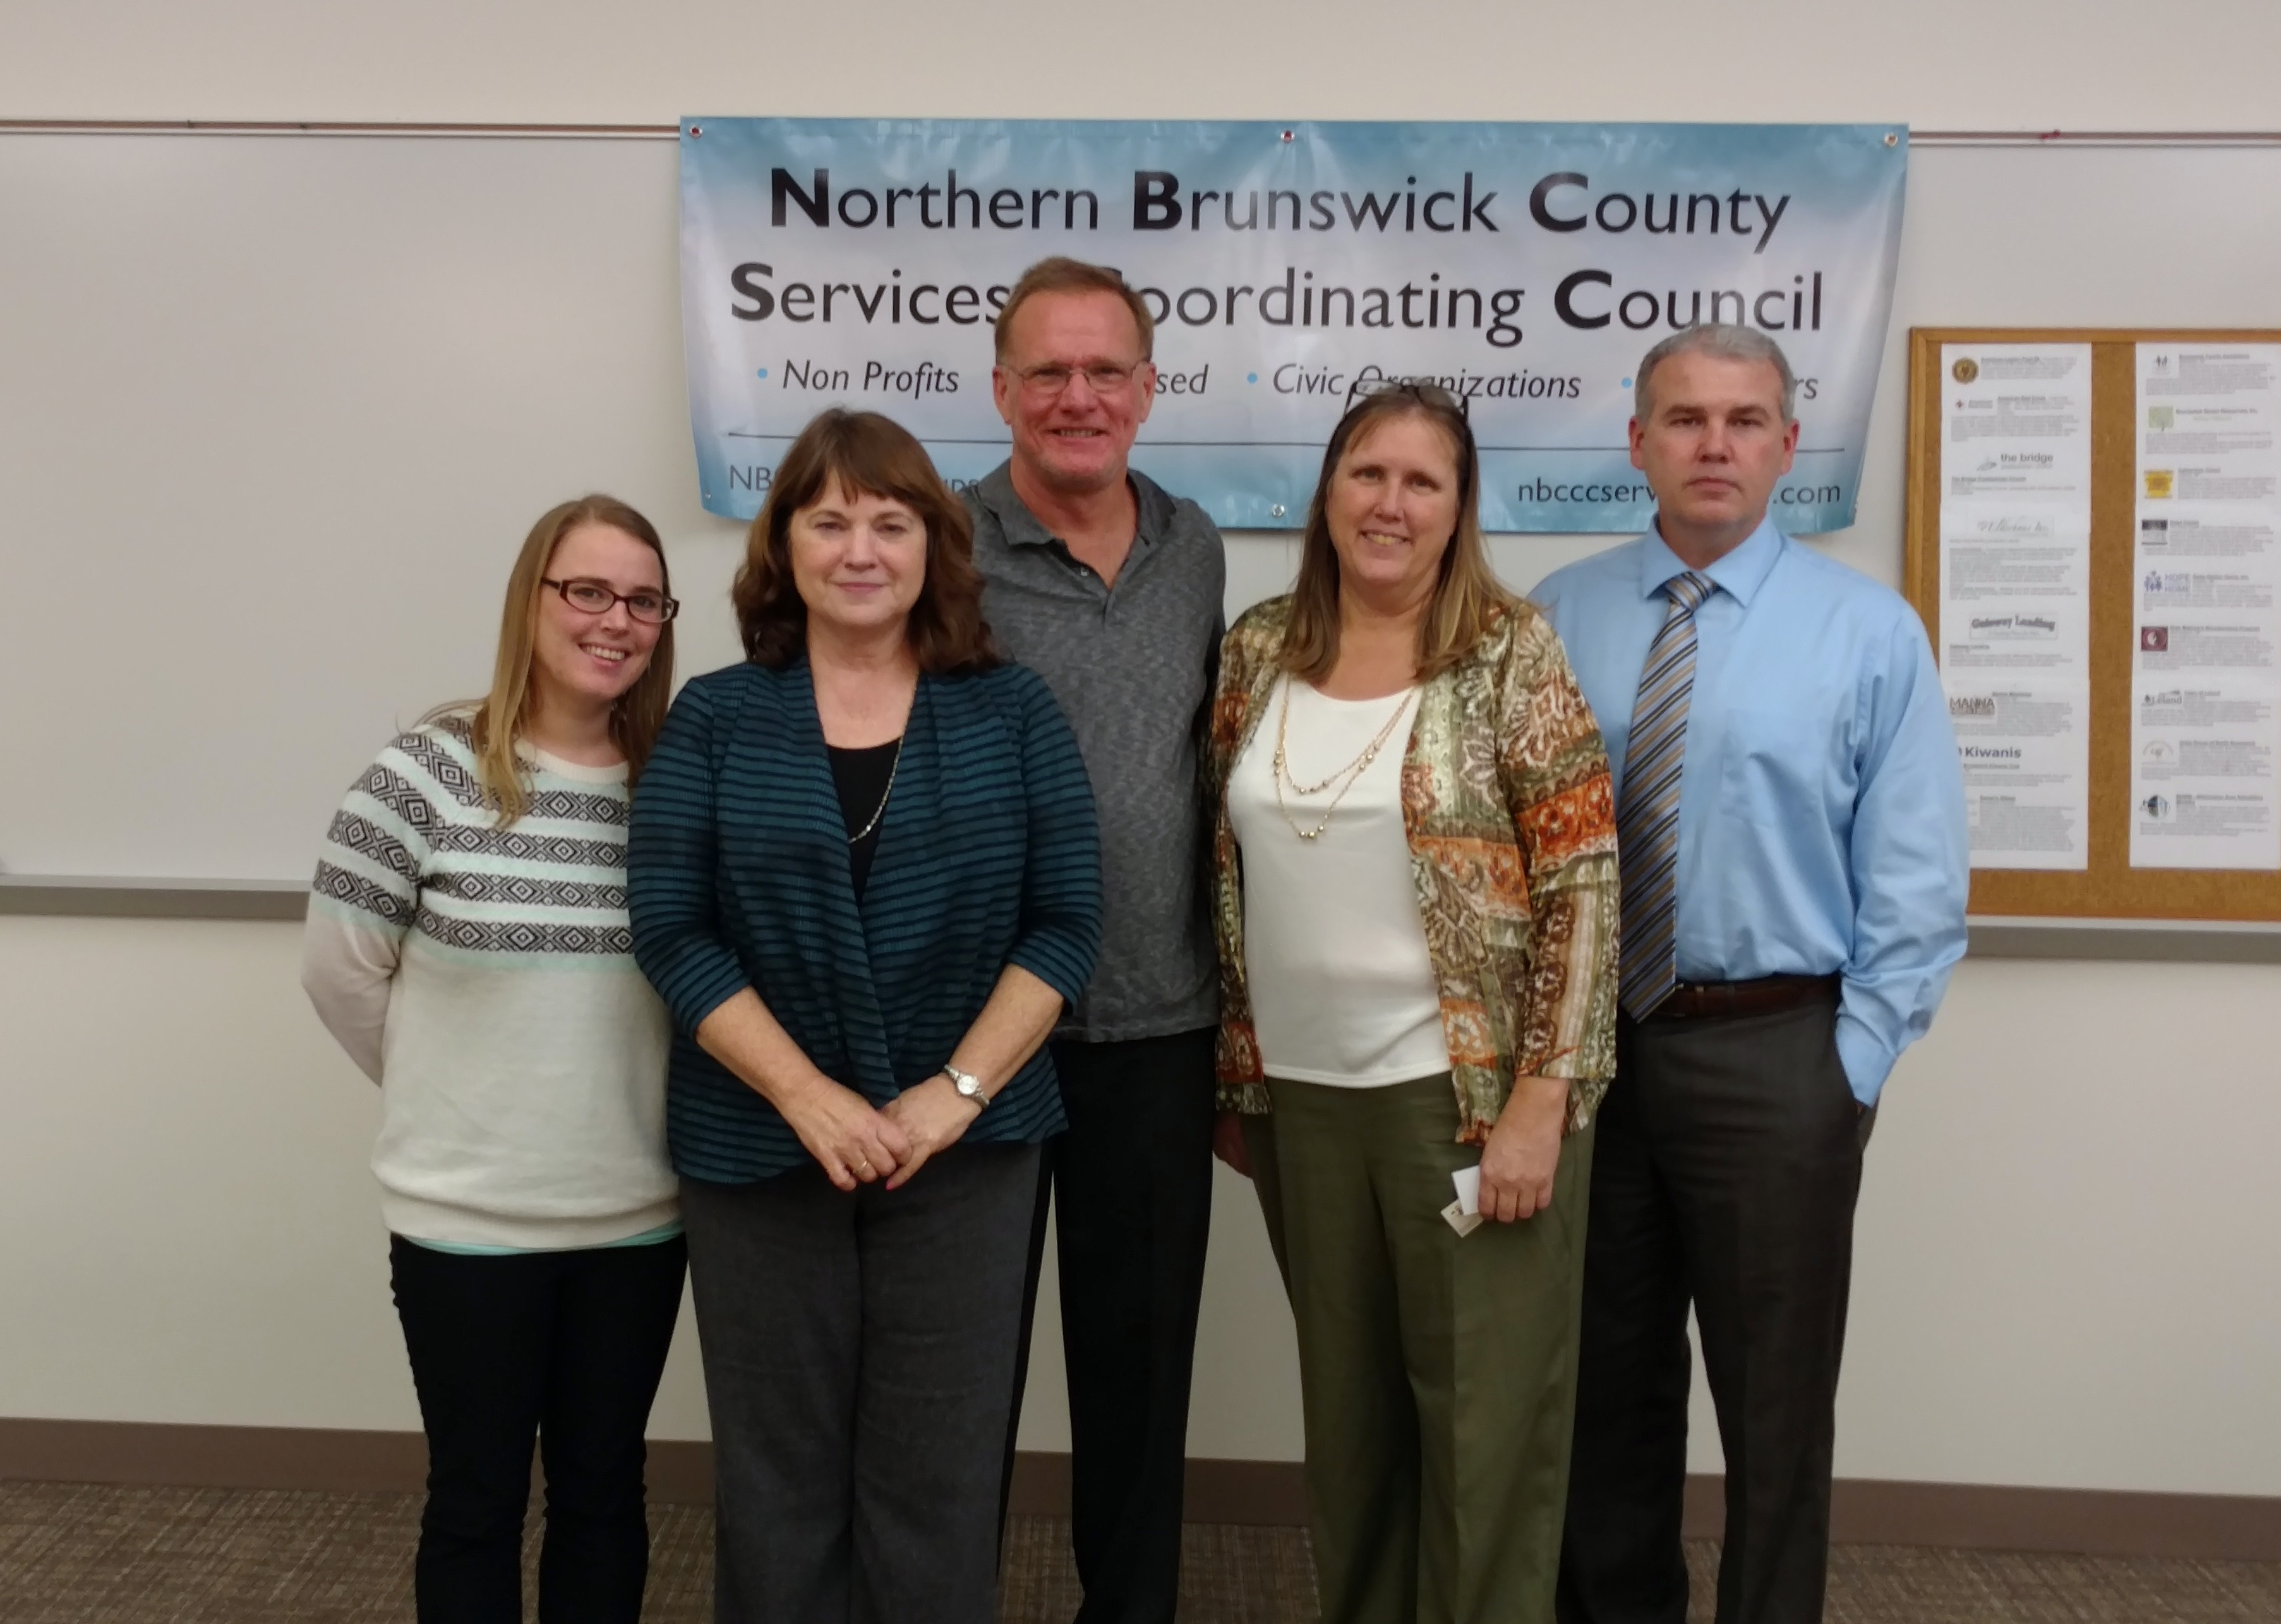 Northern Brunswick County Services Coordinating Council Board